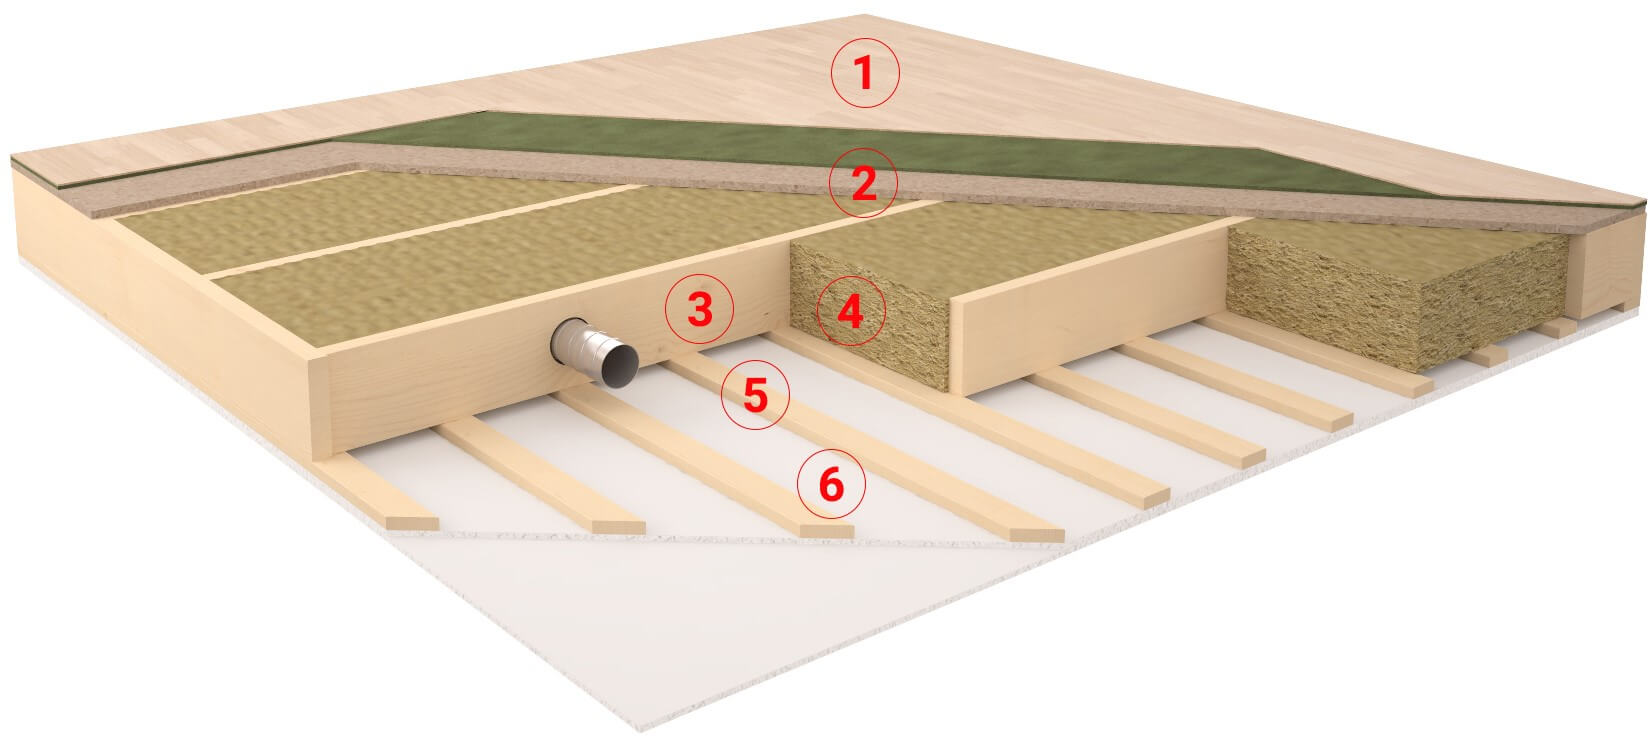 Floor- and ceiling element